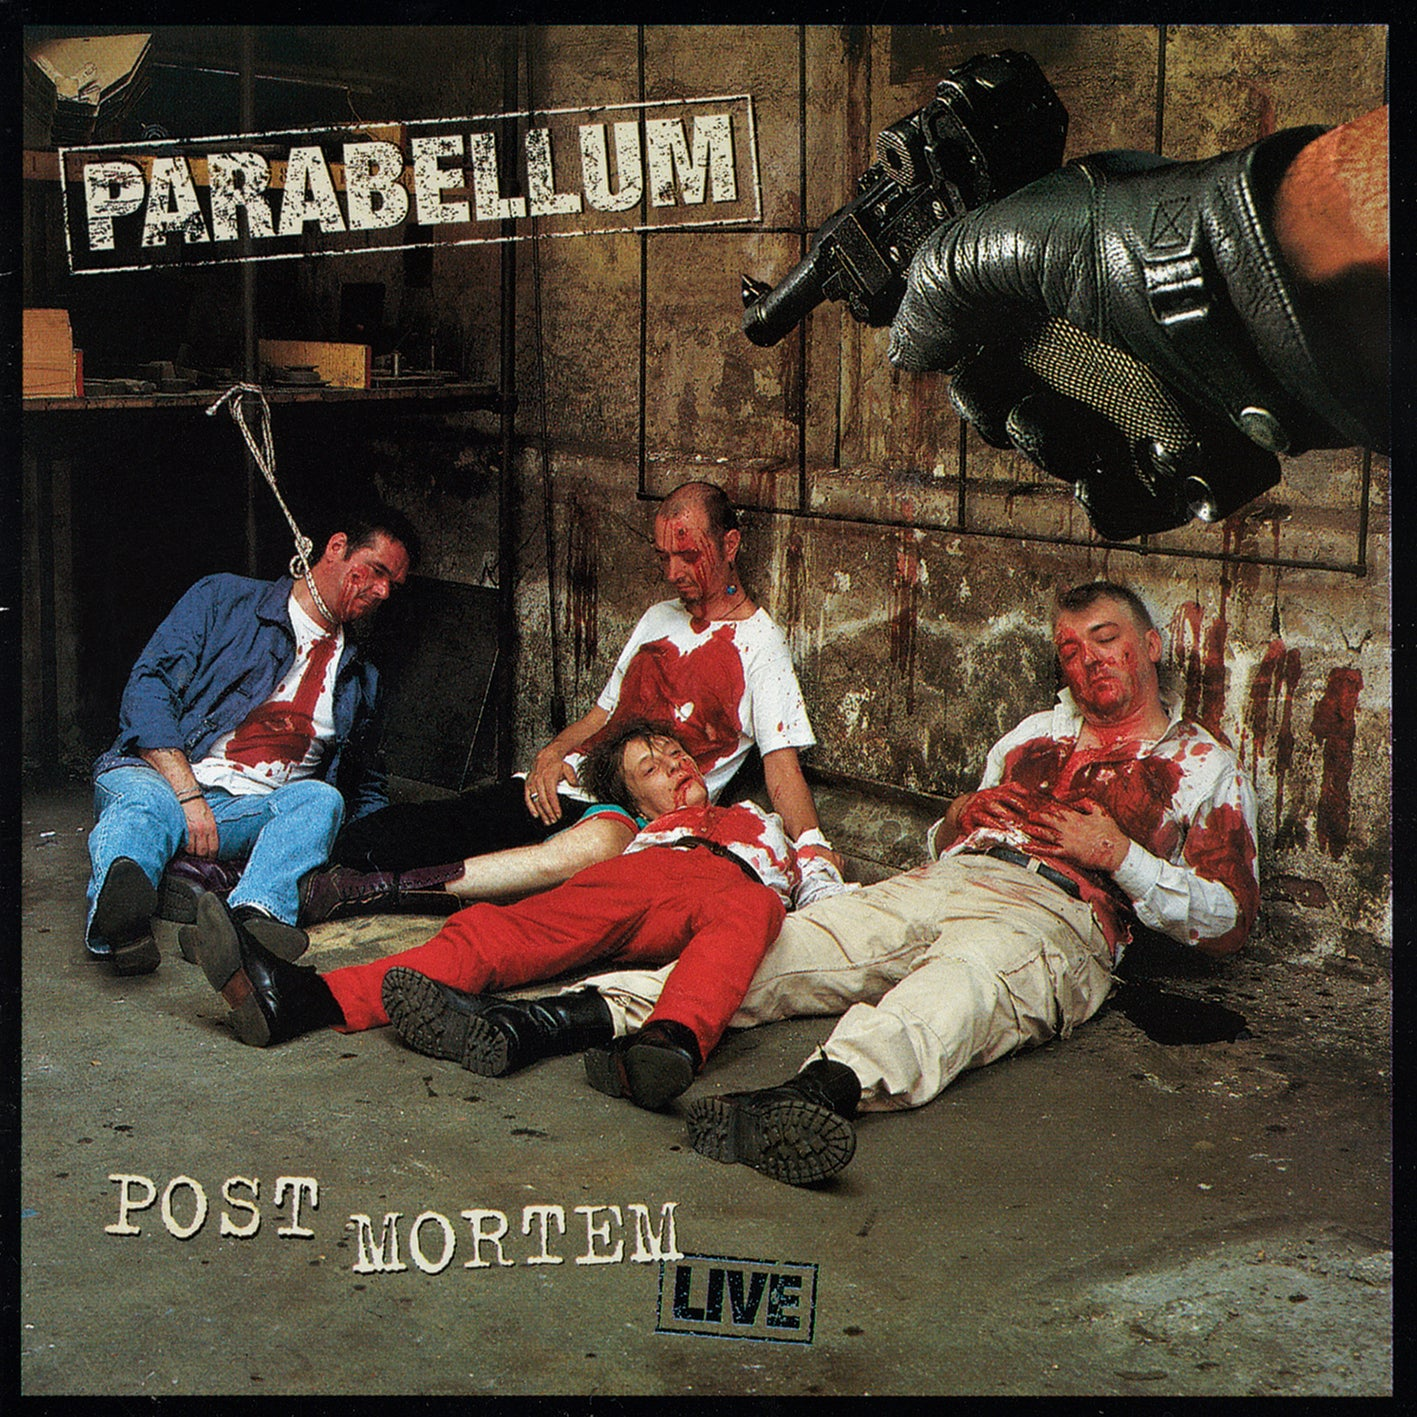 Parabellum - Post Mortem Live (RSD 2020 Drop Three) Red & Black Splatter Colour Vinyl Record Album